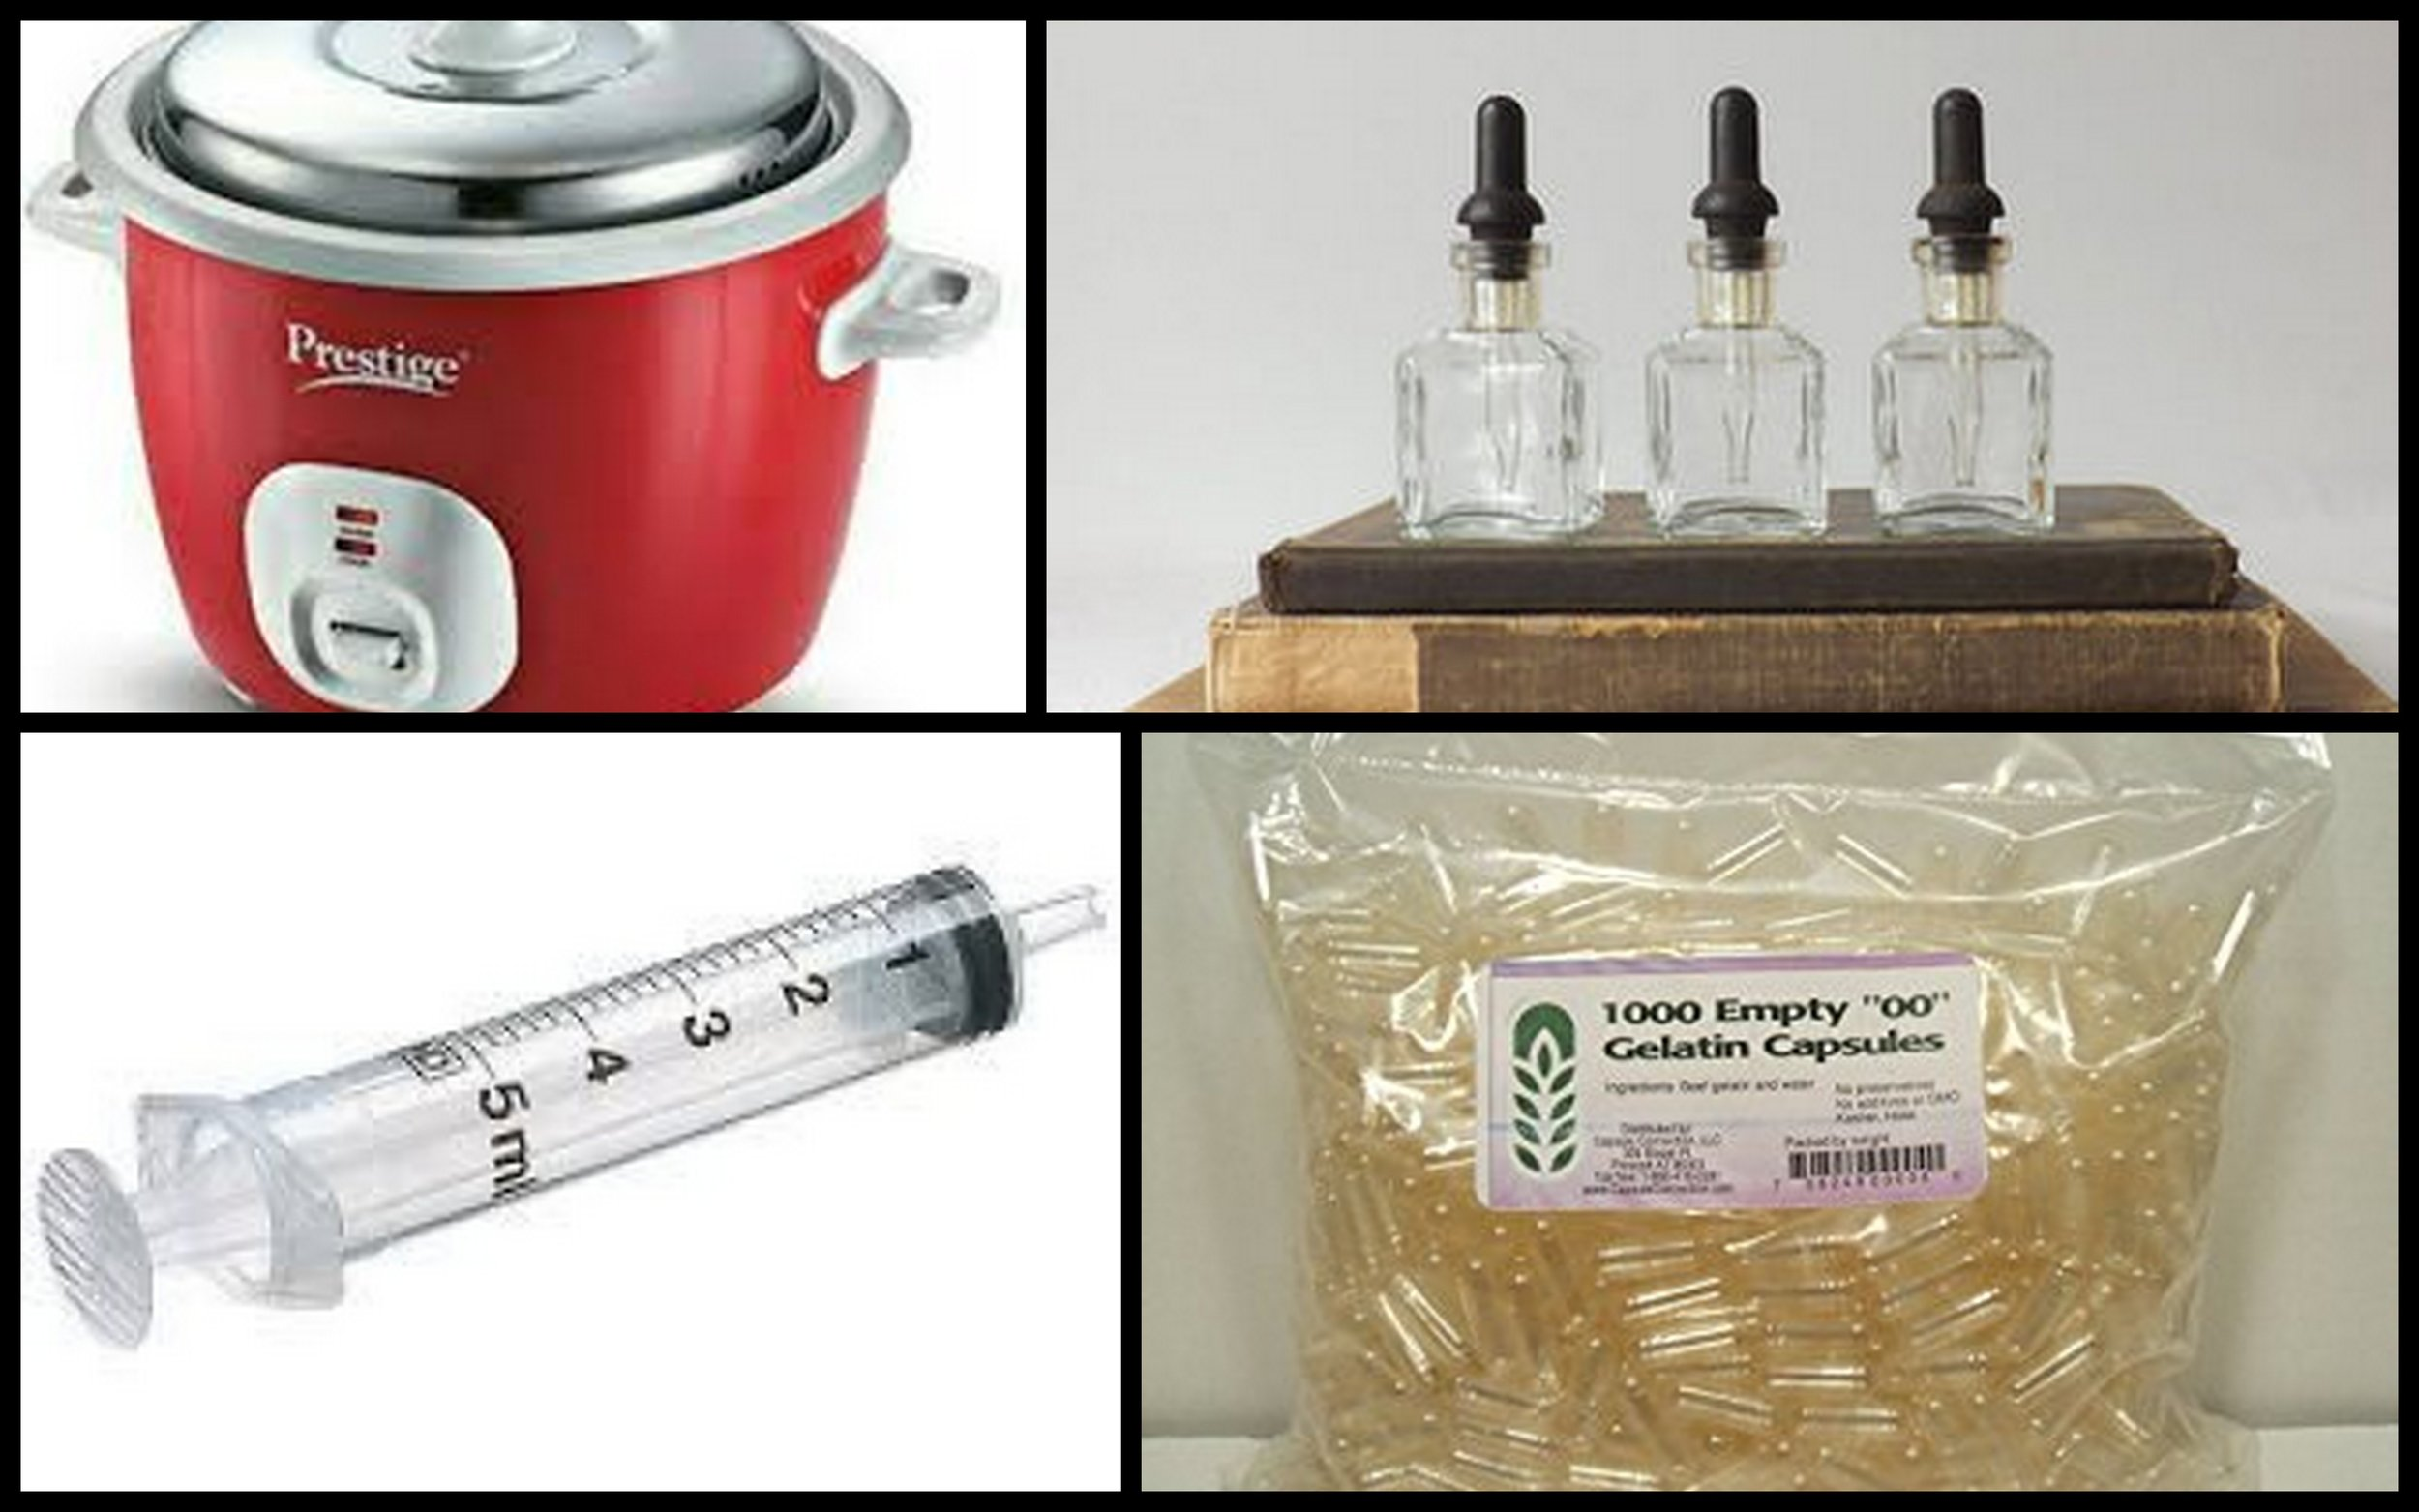 Tools of the apothecary trade: rice cooker, tincture bottles, syringe, capsules.